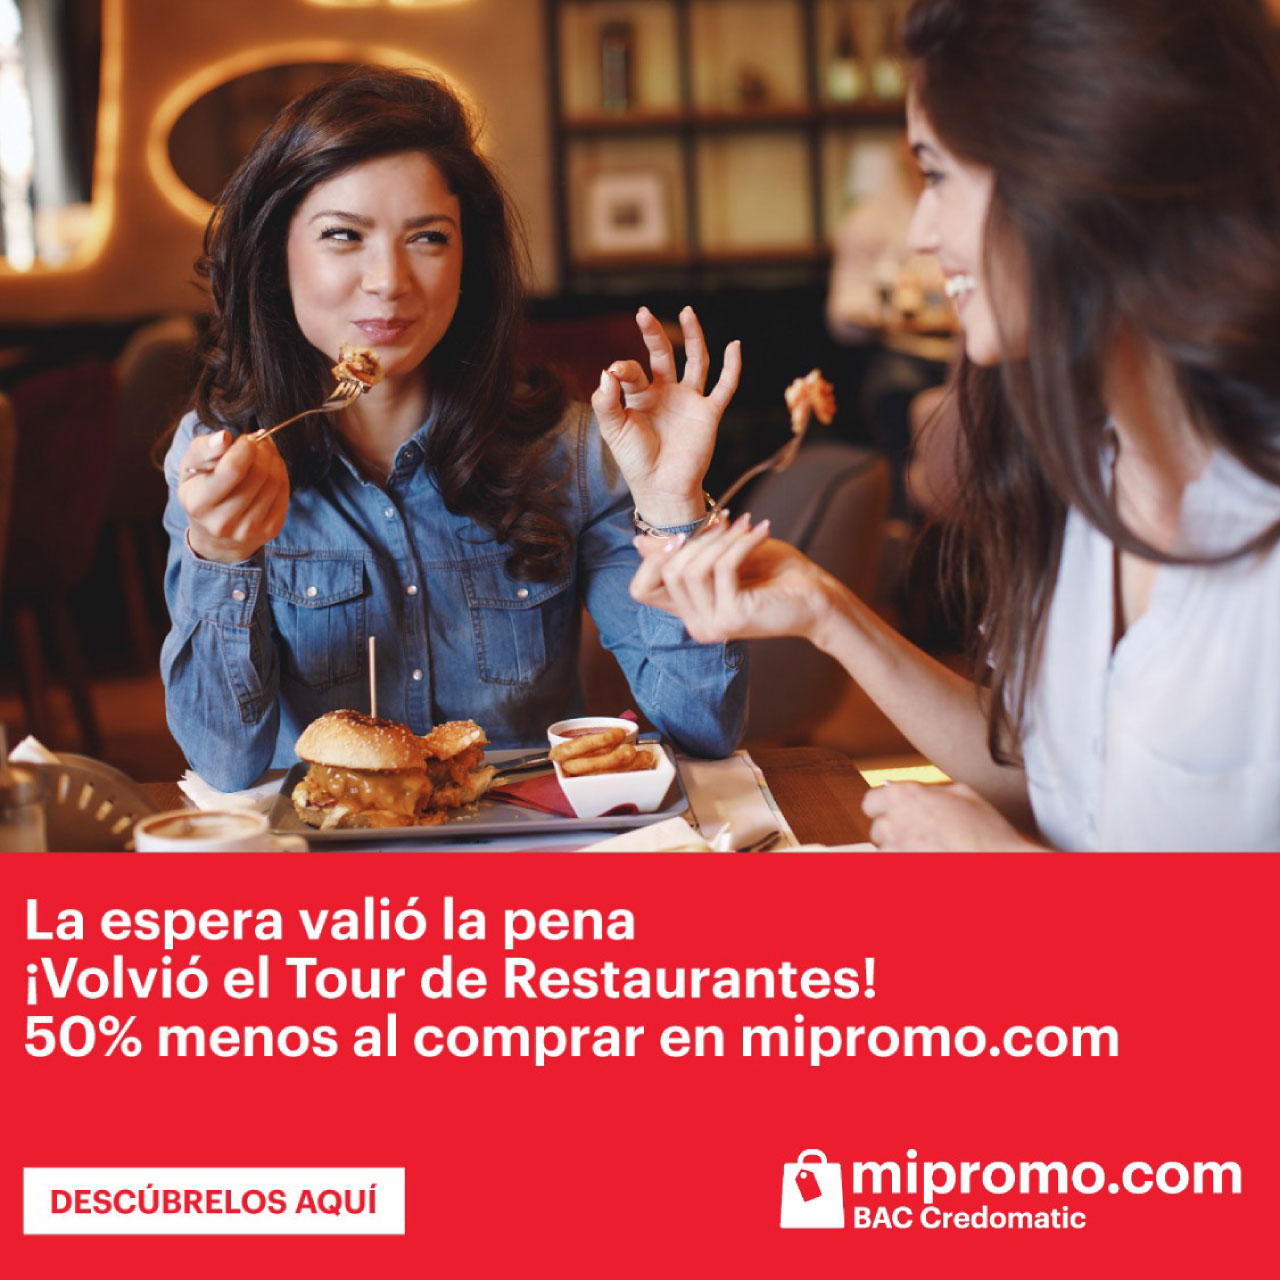 ¡Regresó el Tour de Restaurantes!